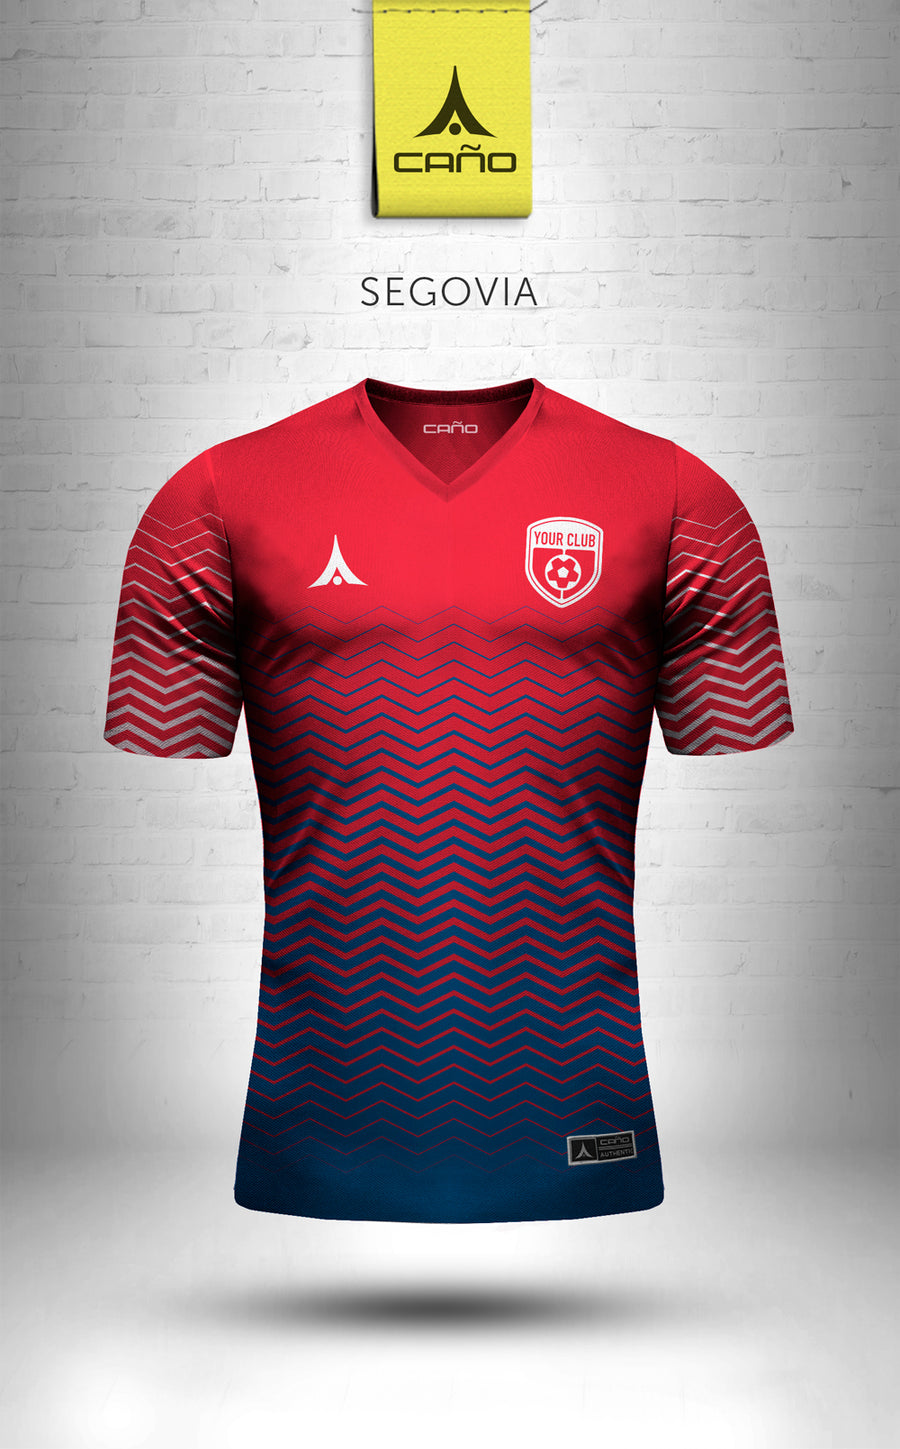 Segovia in red/white/blue